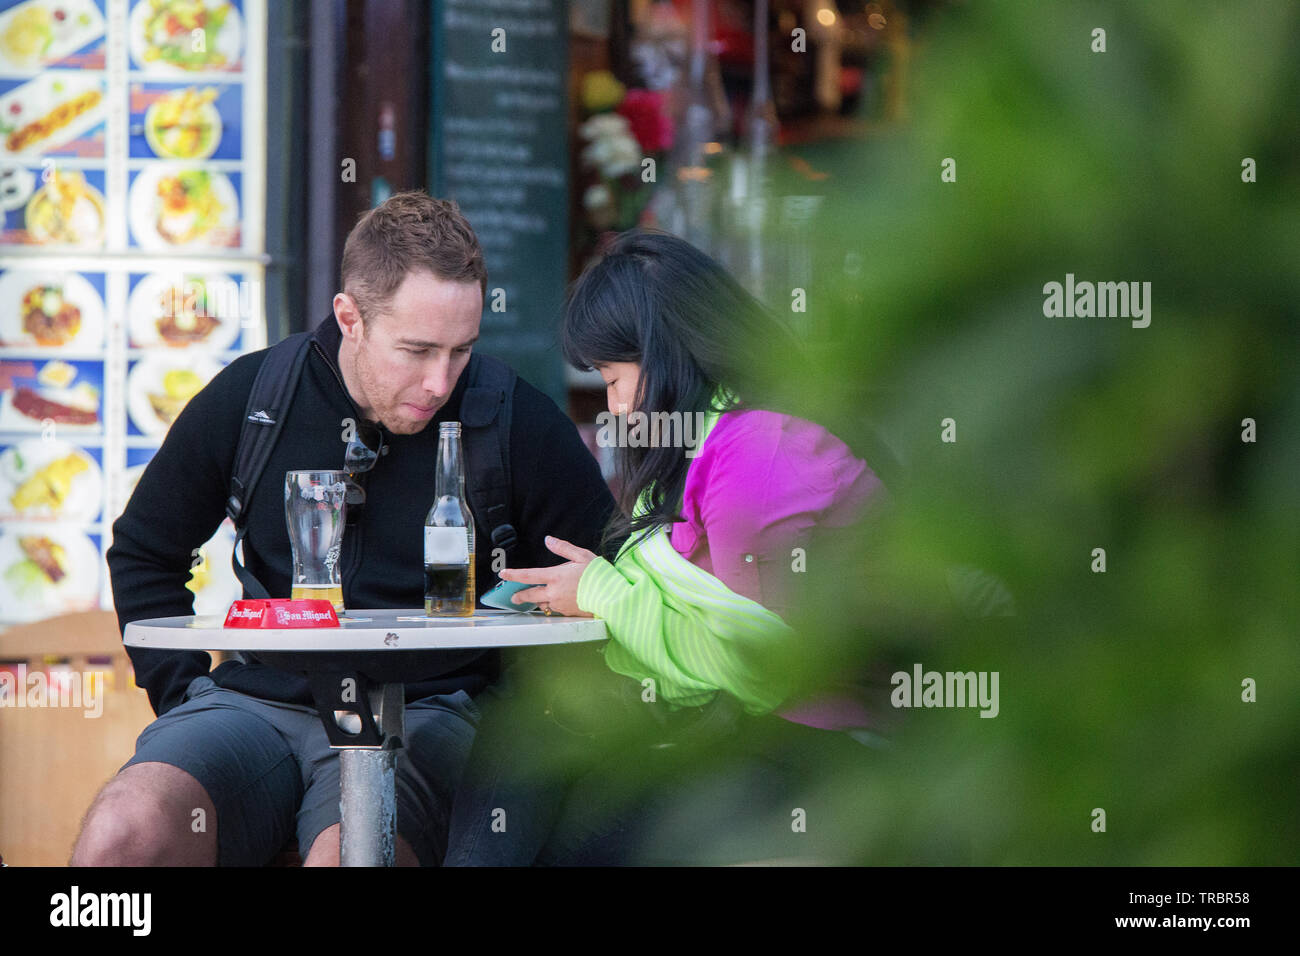 01/25/2015 Europen Man and chinese  girl talking to each other  and  lookimg into a smartphone  and  drinking  beer - Stock Image